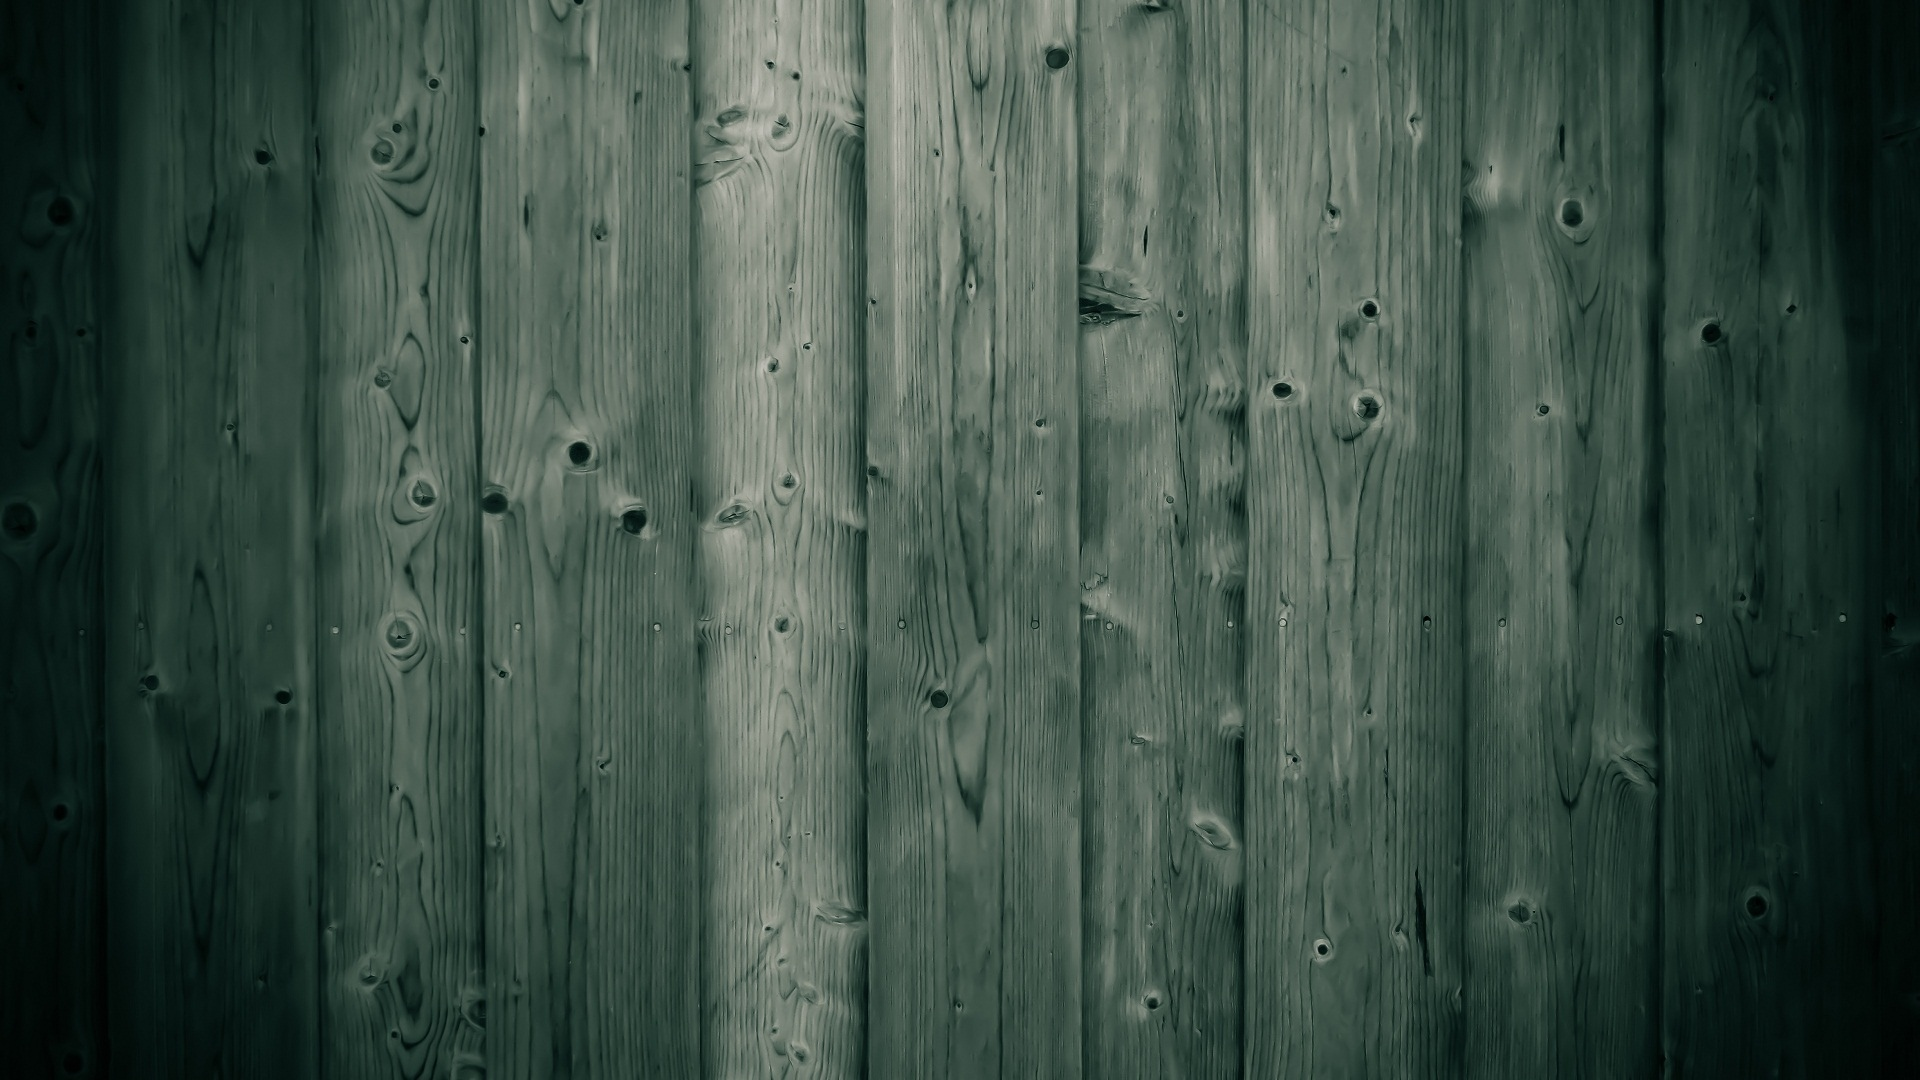 Holz full hd wallpaper and hintergrund 1920x1080 id 447189 for Holz wallpaper